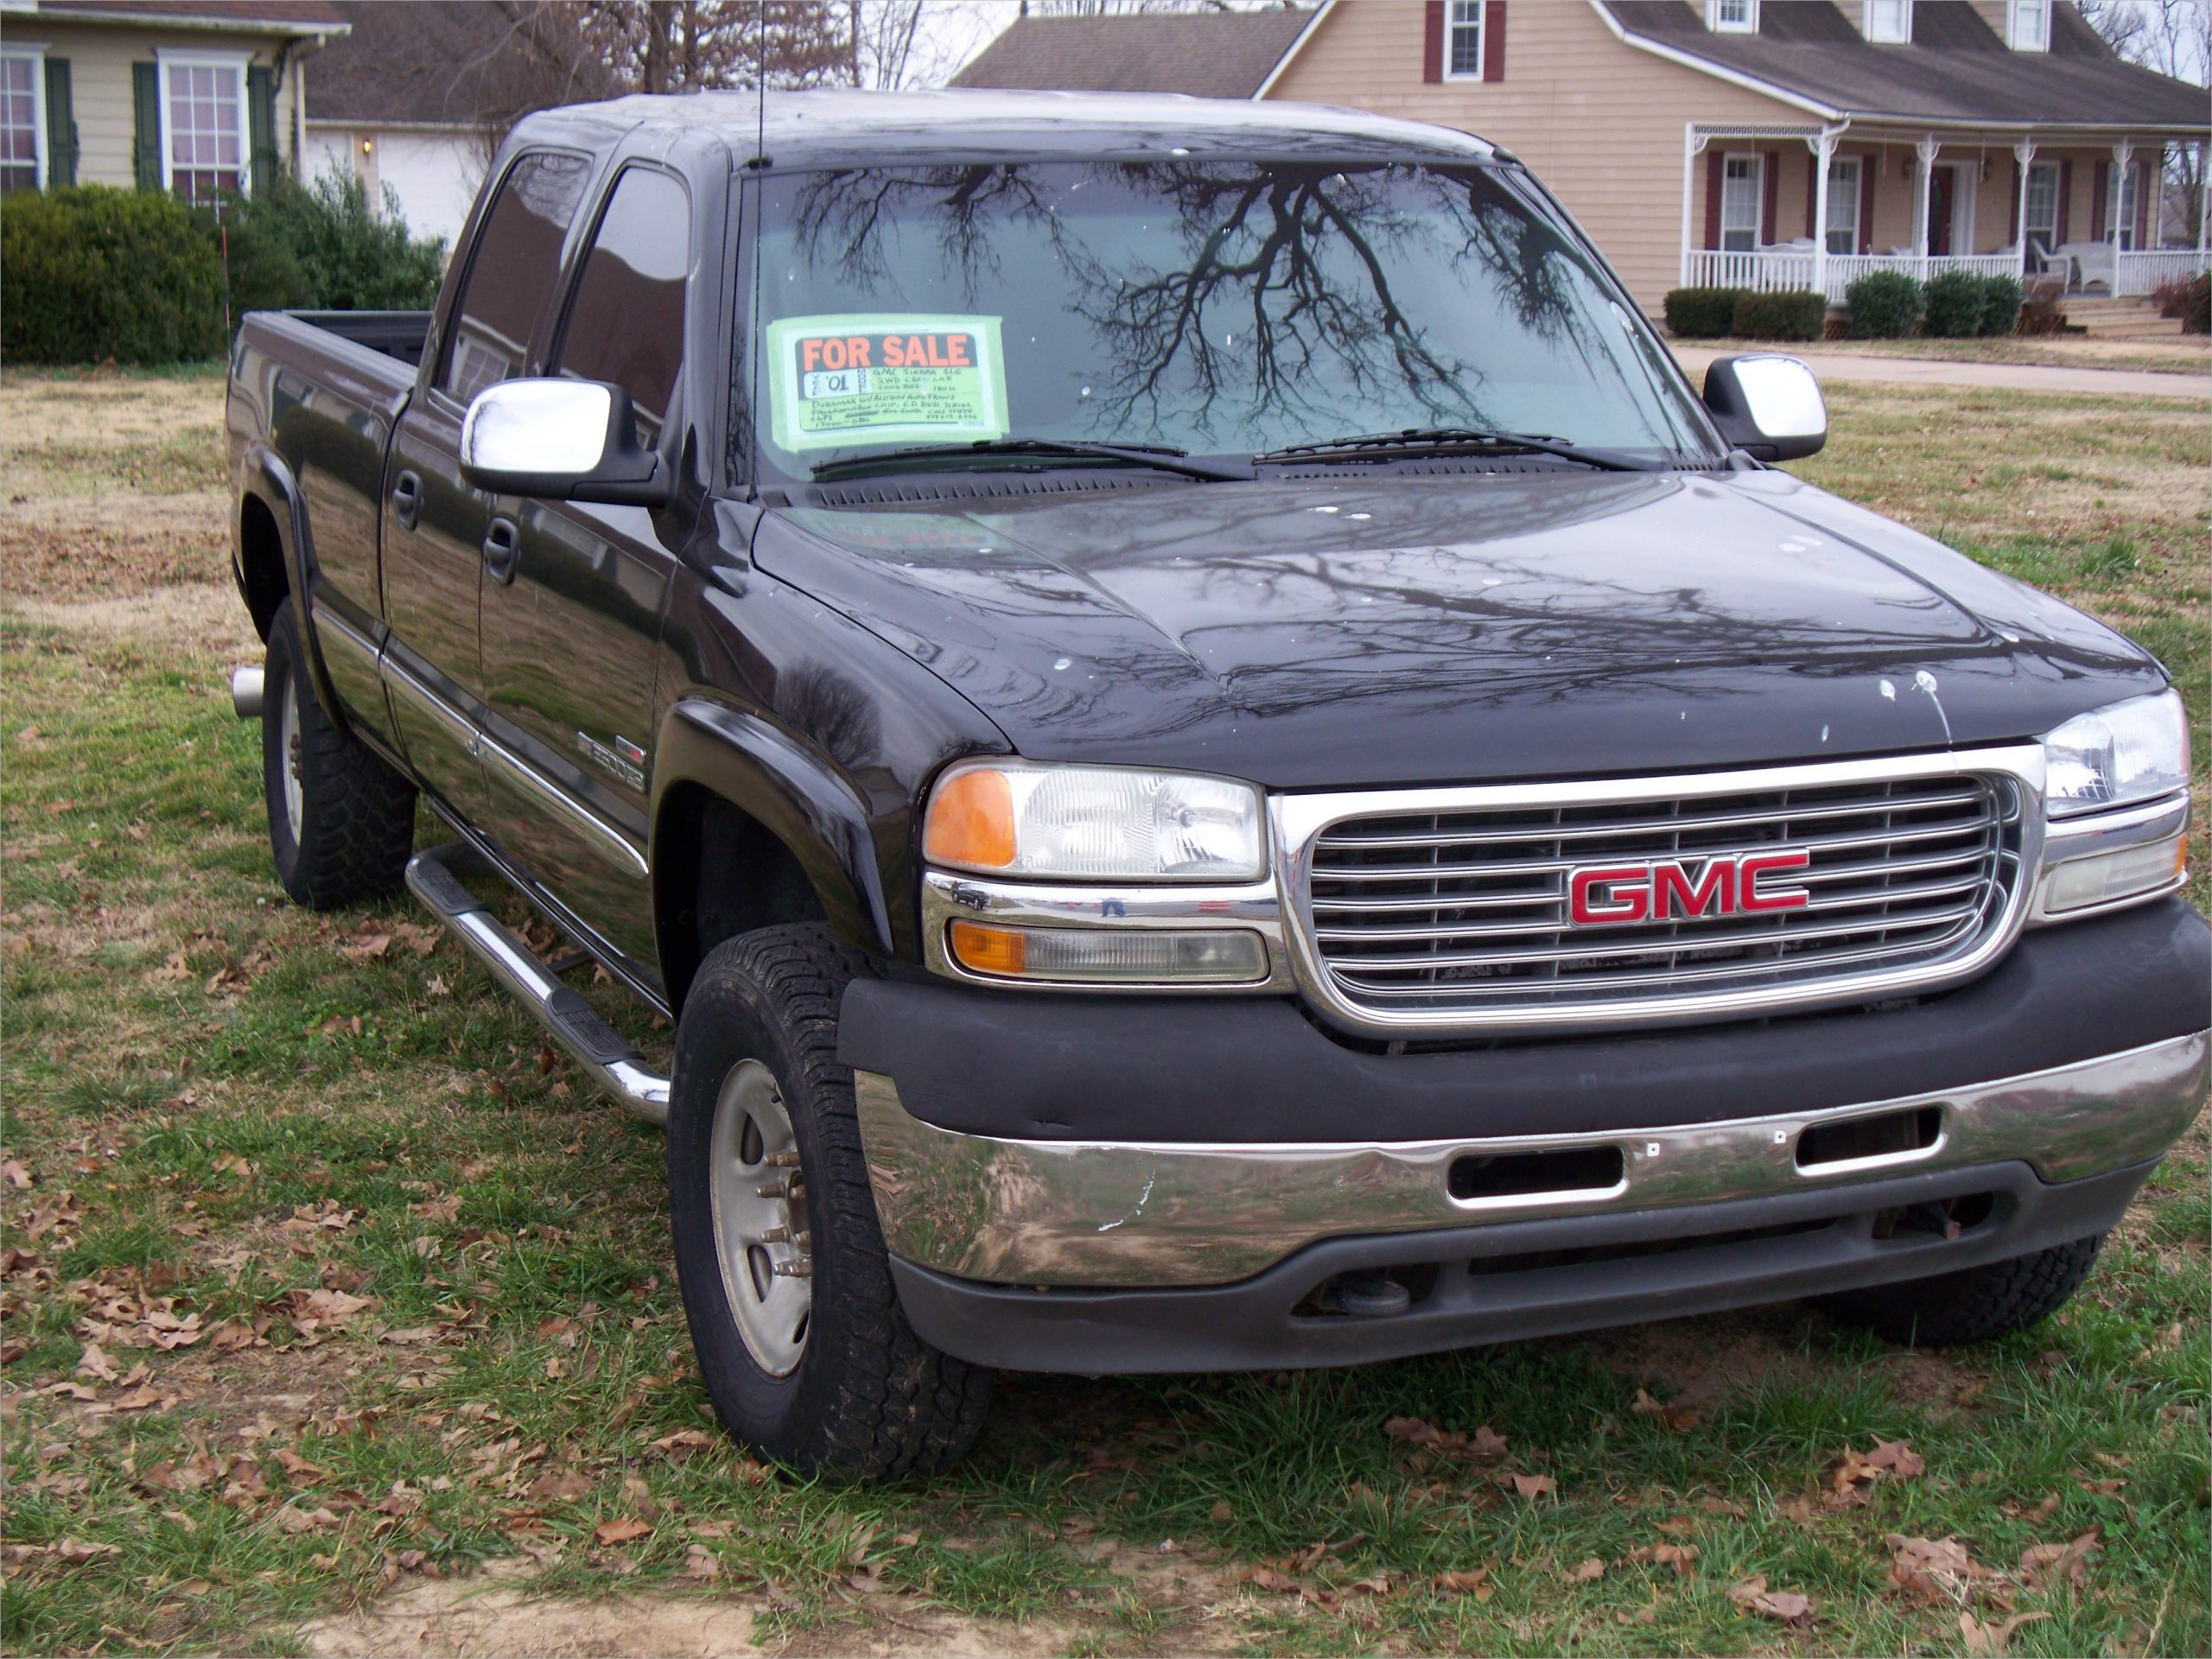 Park Art|My WordPress Blog_Craigslist Used Cars And Trucks For Sale By Owner Near Me